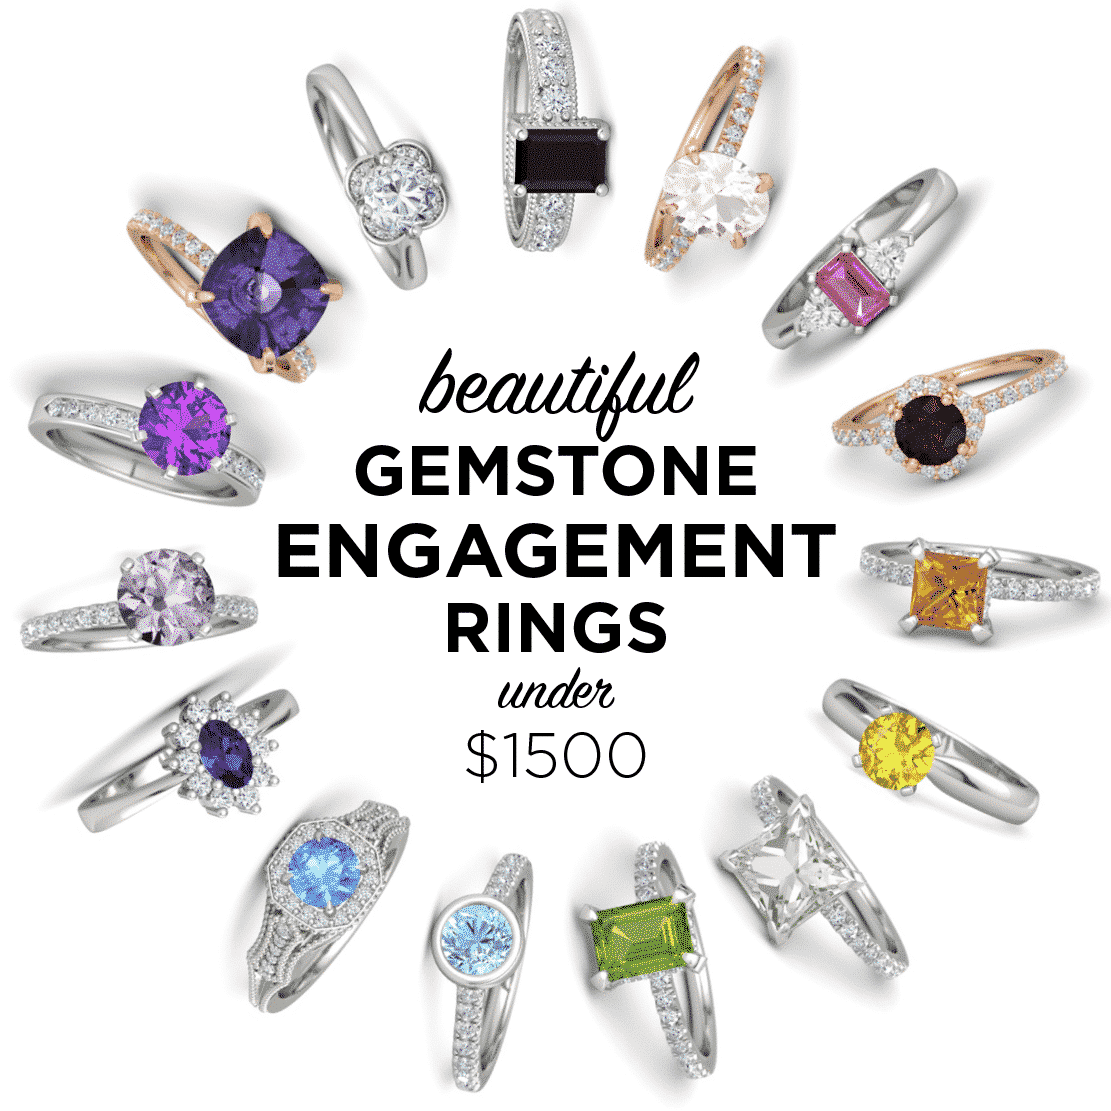 Gemstone Engagement Rings under $1500